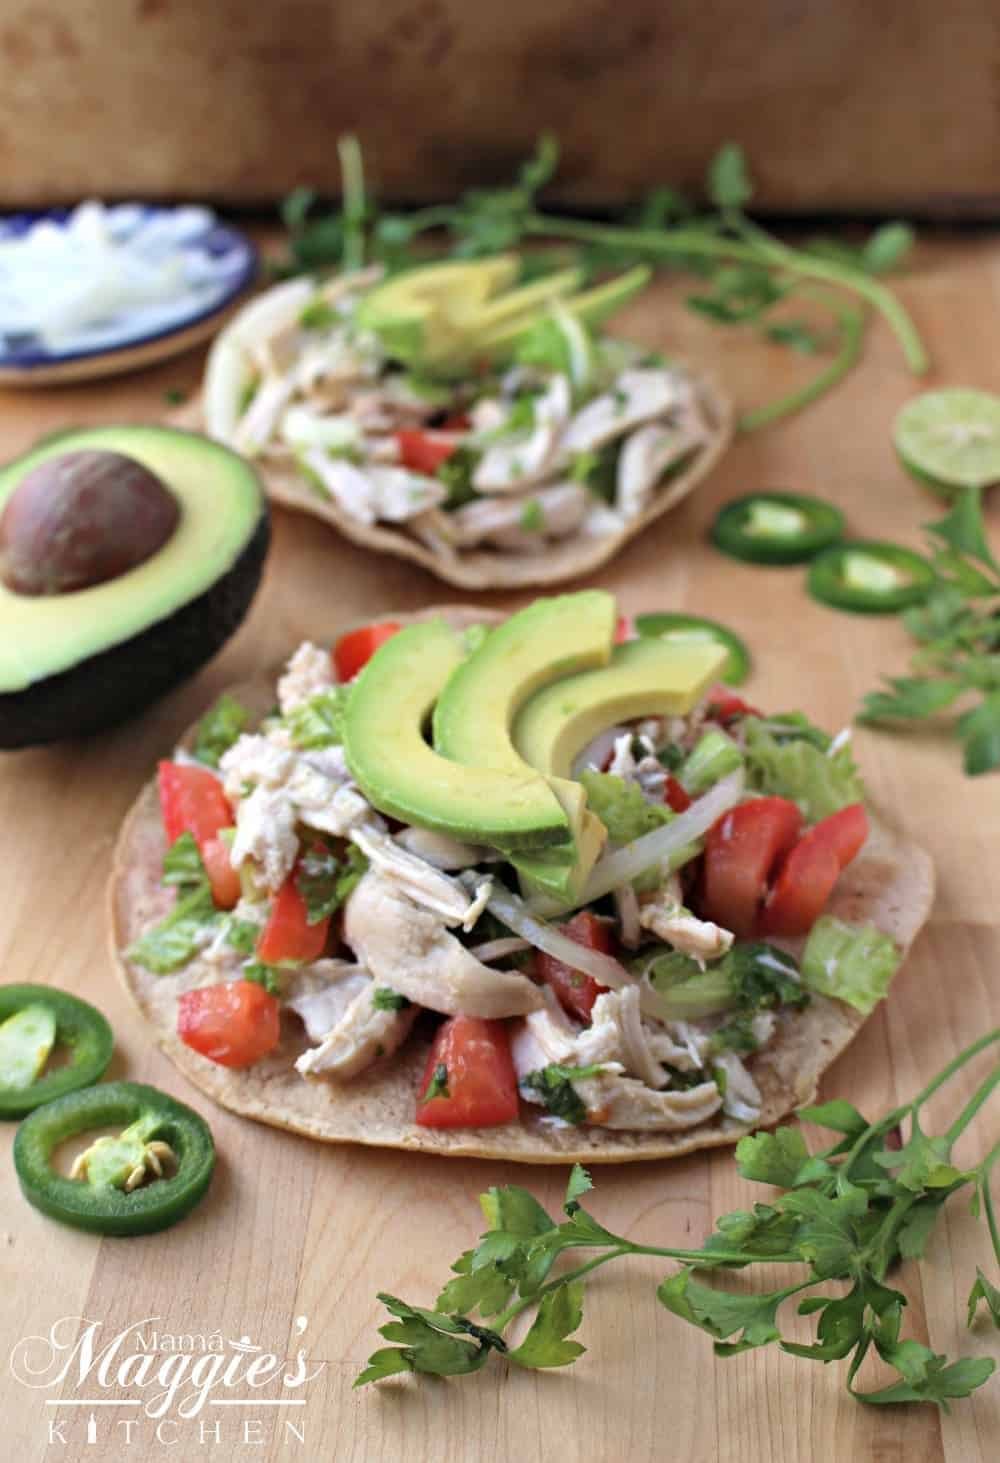 A tostada of Salpicon de Pollo topped with avocado slices surrounded by cilantro and jalapeno.